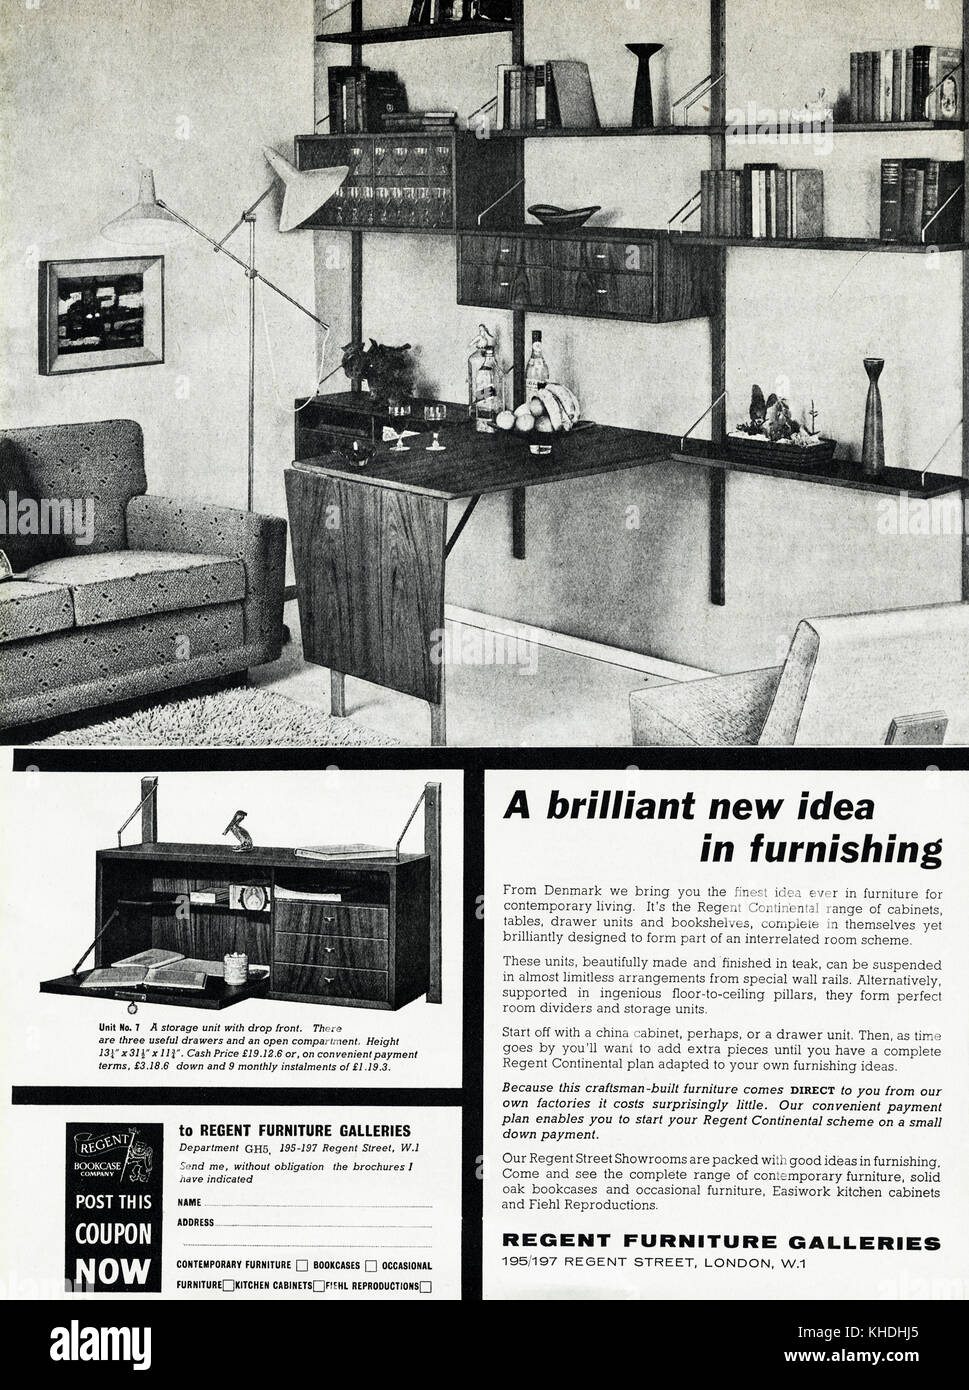 Captivating 1950s Old Vintage Original Advert British Magazine Print Advertisement  Advertising Home Furnishing By Regent Furniture Galleries Of London England  UK Dated ...